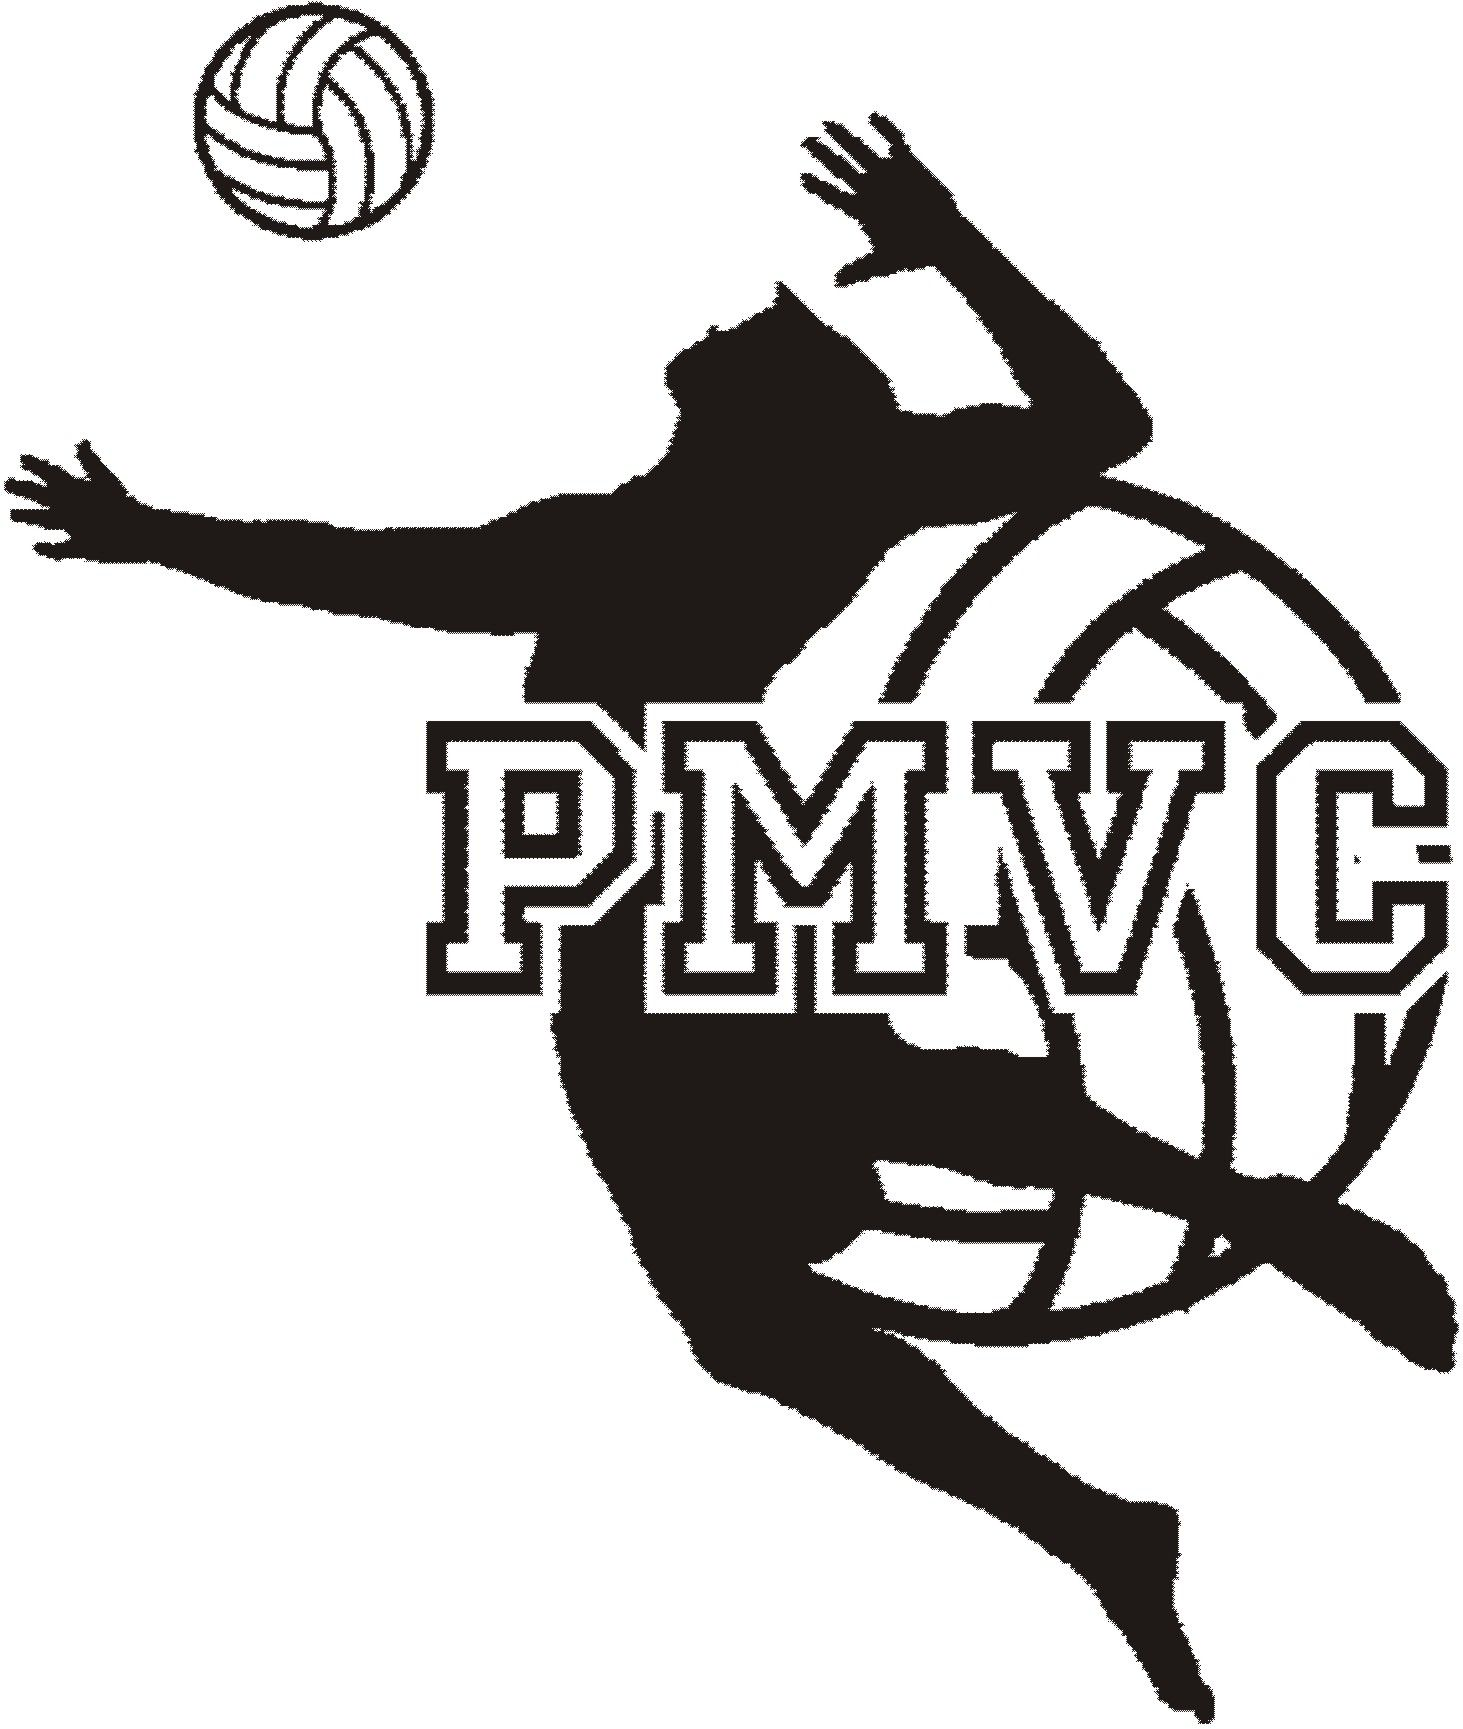 Volleyball Logos Pmvc Volleyball Launch Week At Tor Bridge Update South West Volleyball Shirt Designs Volleyball Tshirt Designs Volleyball